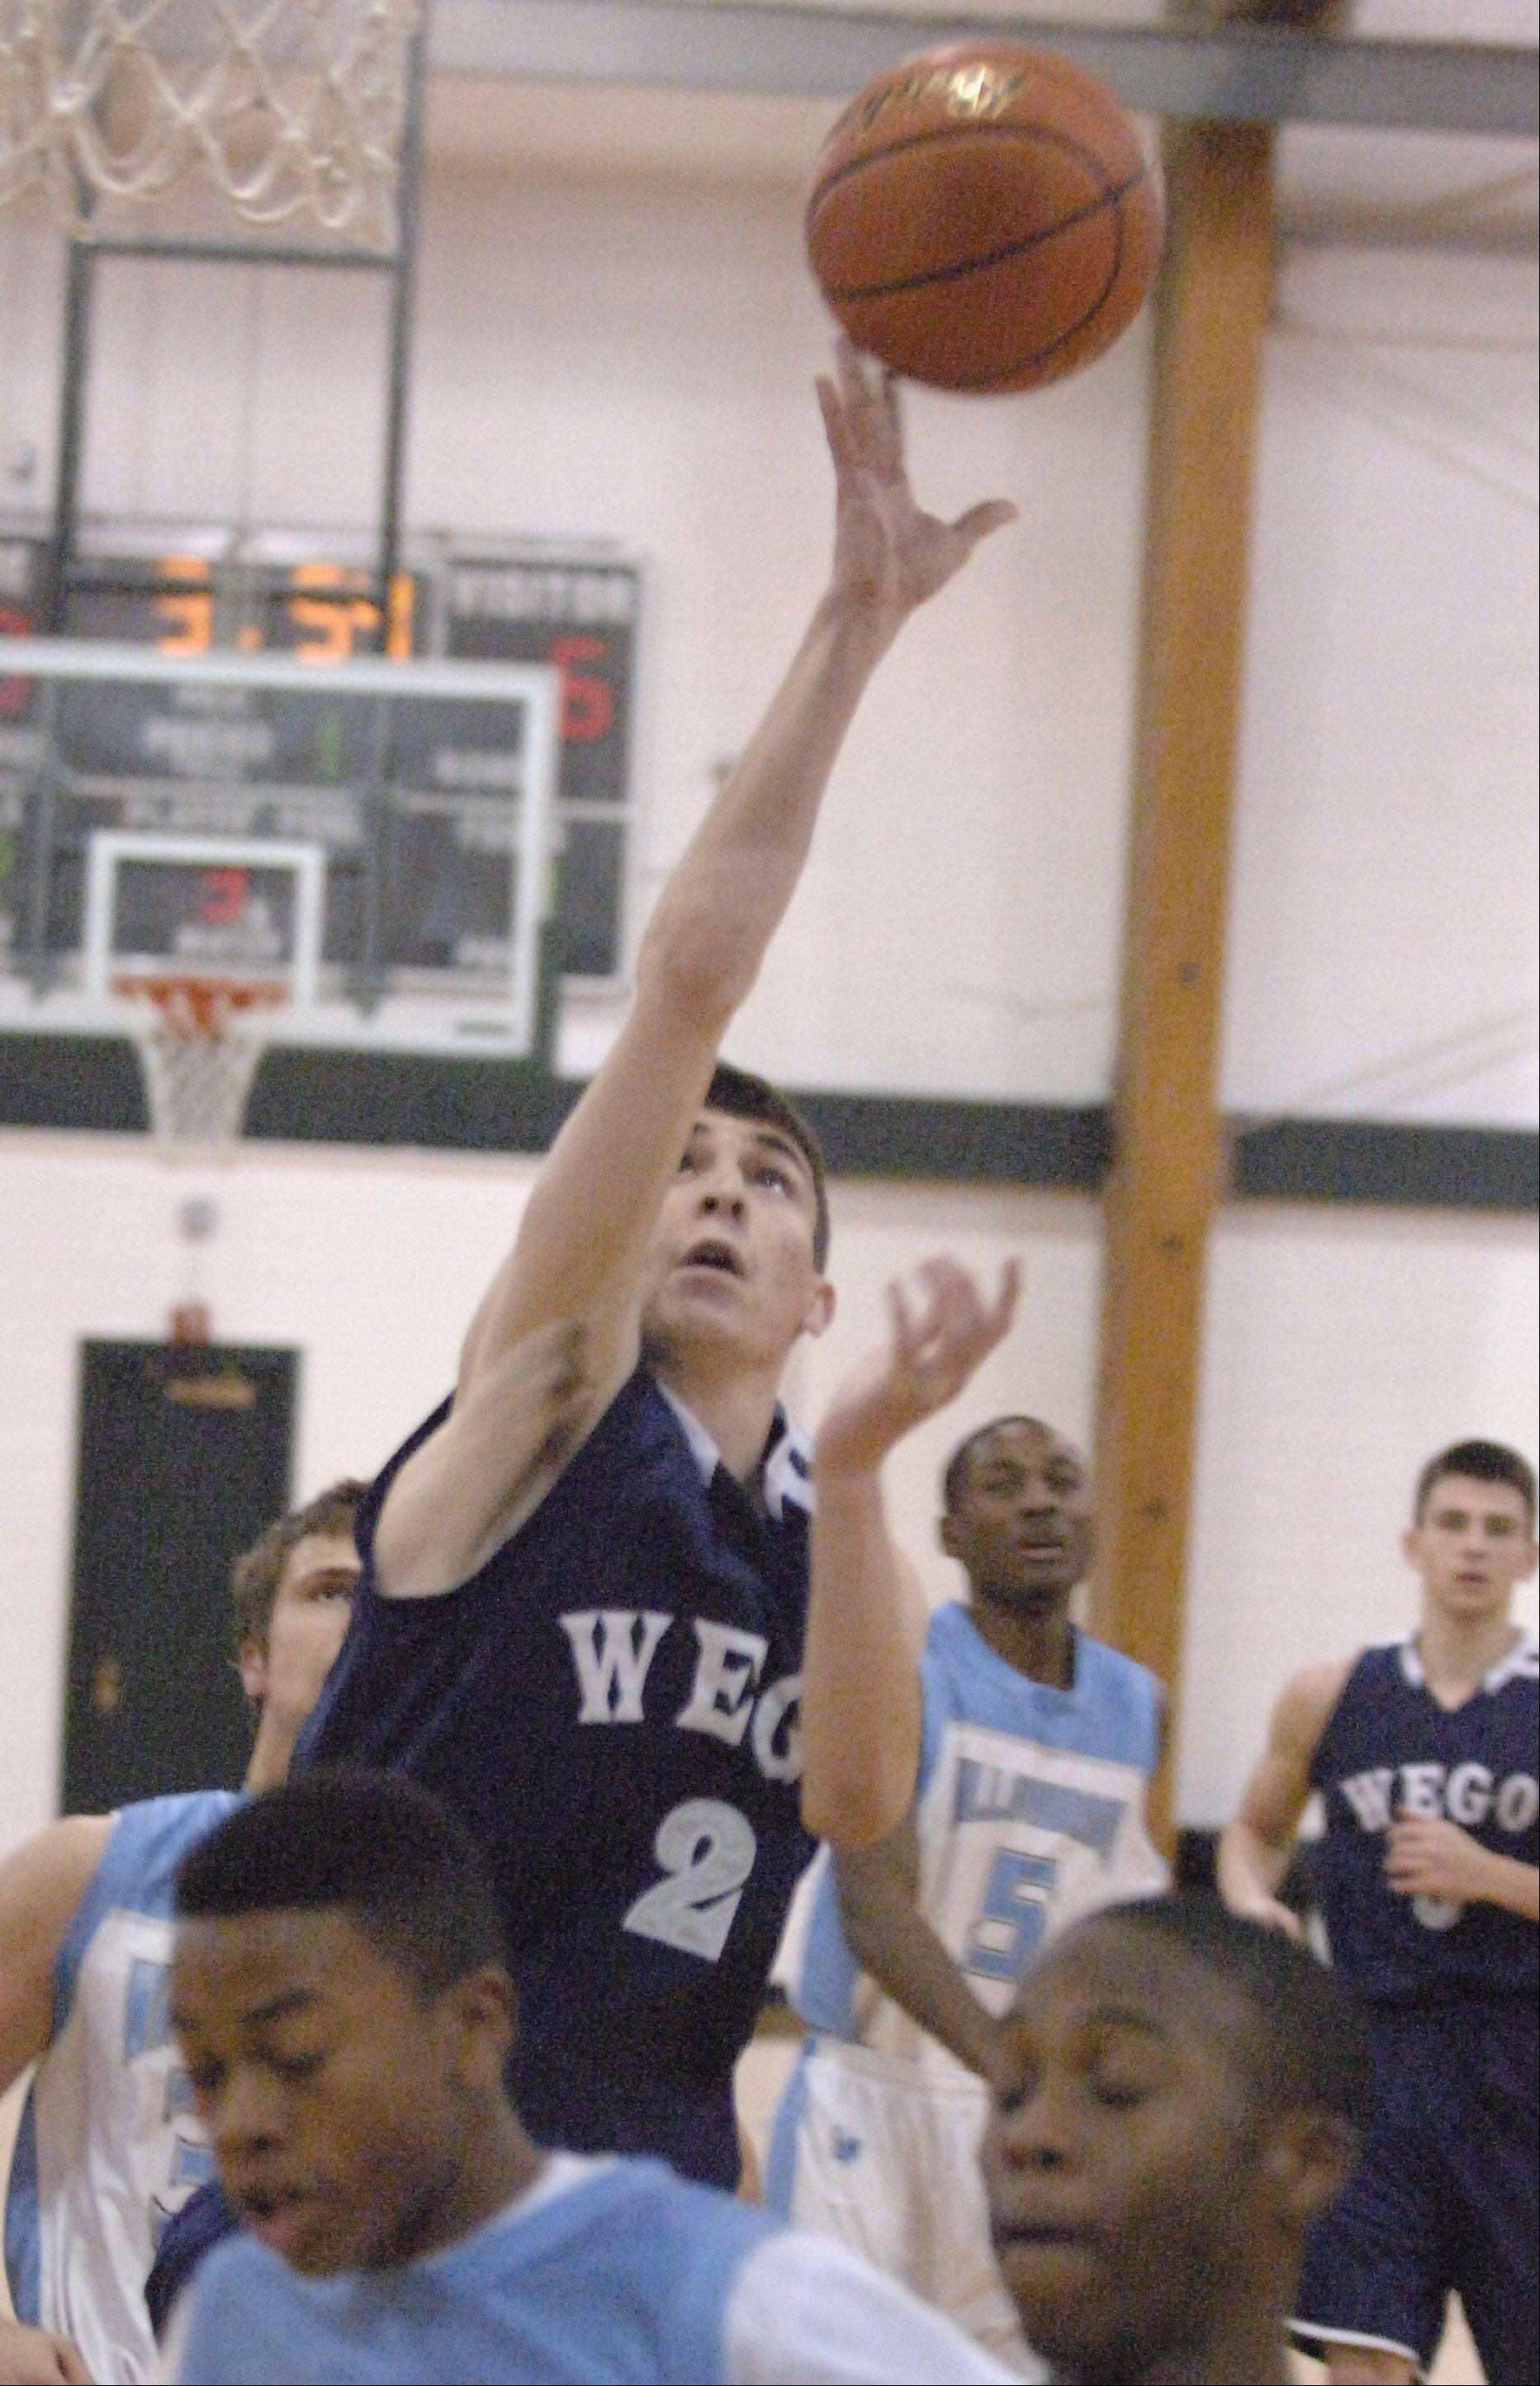 Jimmy Rizzo of West Chicago takes a shot during the West Chicago vs. Willowbrook boys basketball game at the Glenbard West Holiday Tournament Thursday.